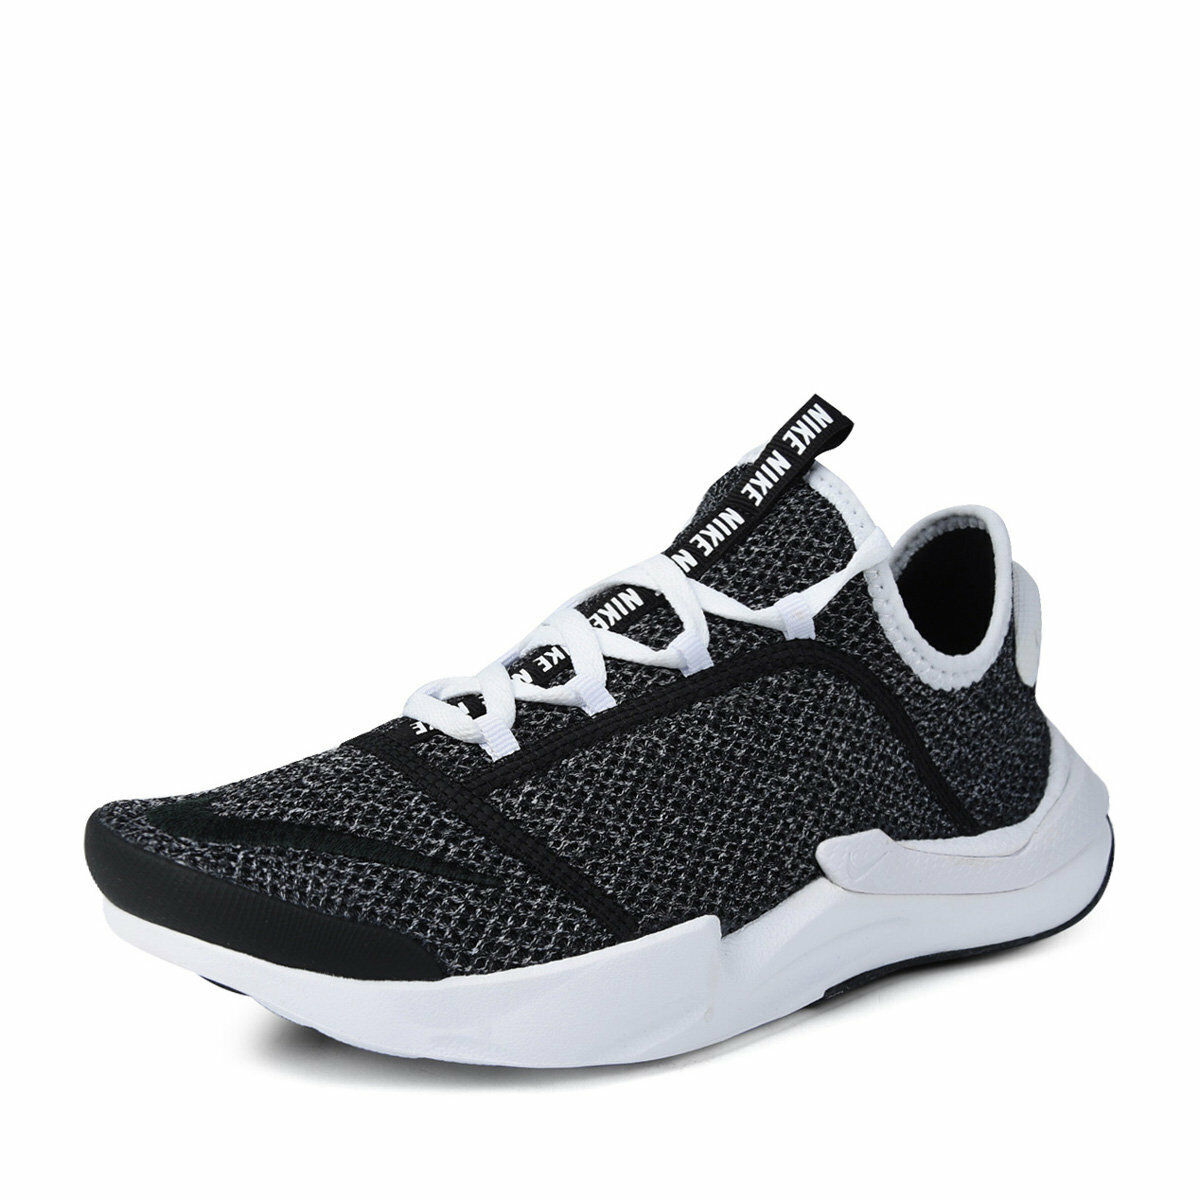 NIKE SHIFT ONE SE RUNNING SNEAKERS LOW MEN SHOES PANTHER AO1734-001 SIZE 11 NEW